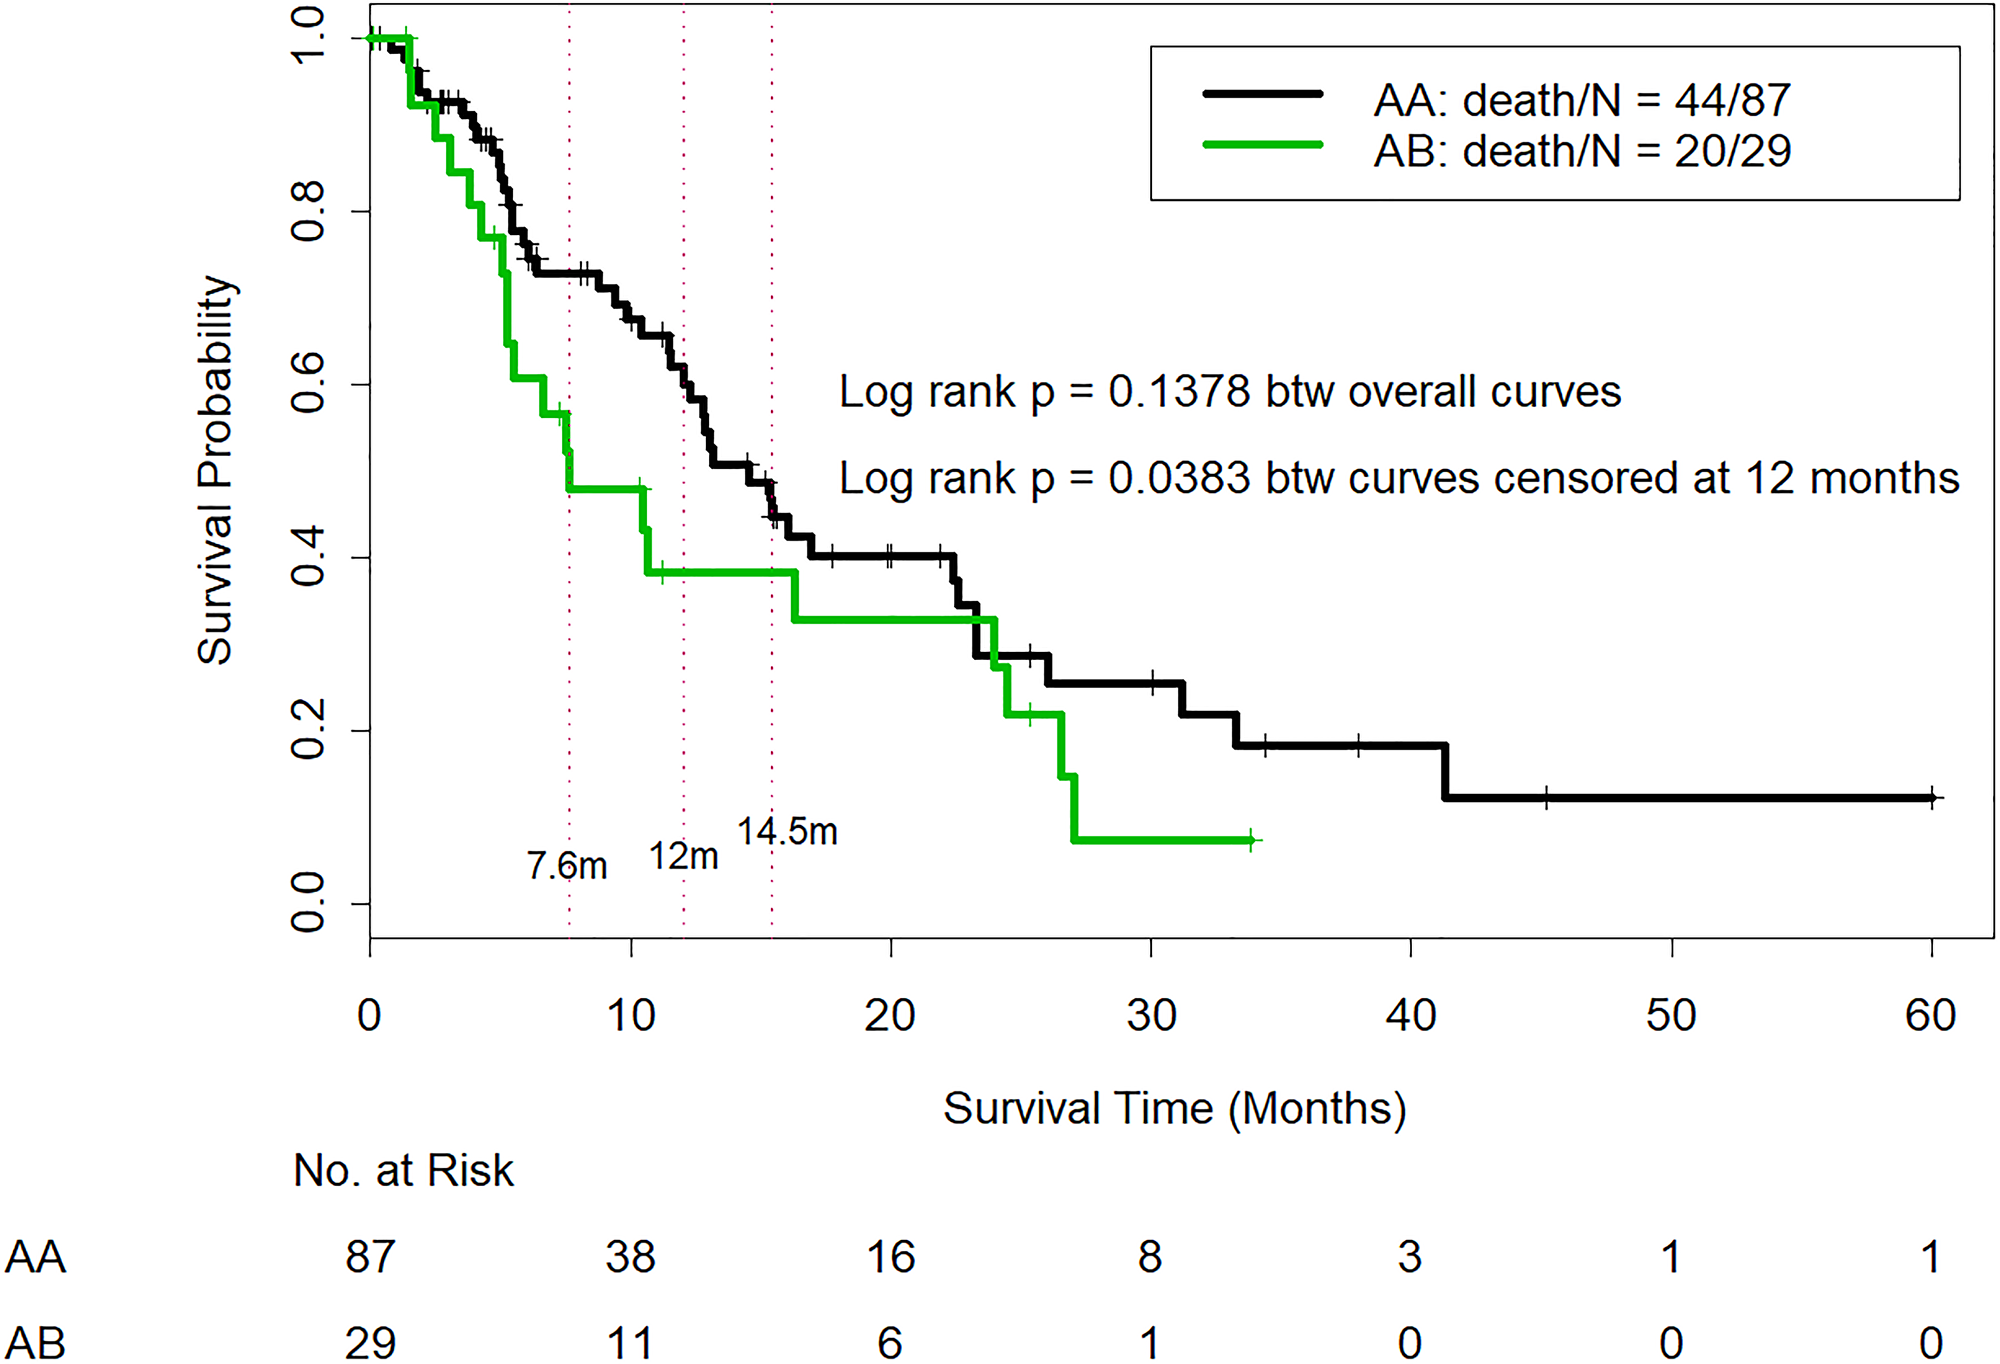 Comparison of overall survival in CTP class A patients who were reclassified as IGF/CTP-A (AA) and or IGF/CTP-B (AB).